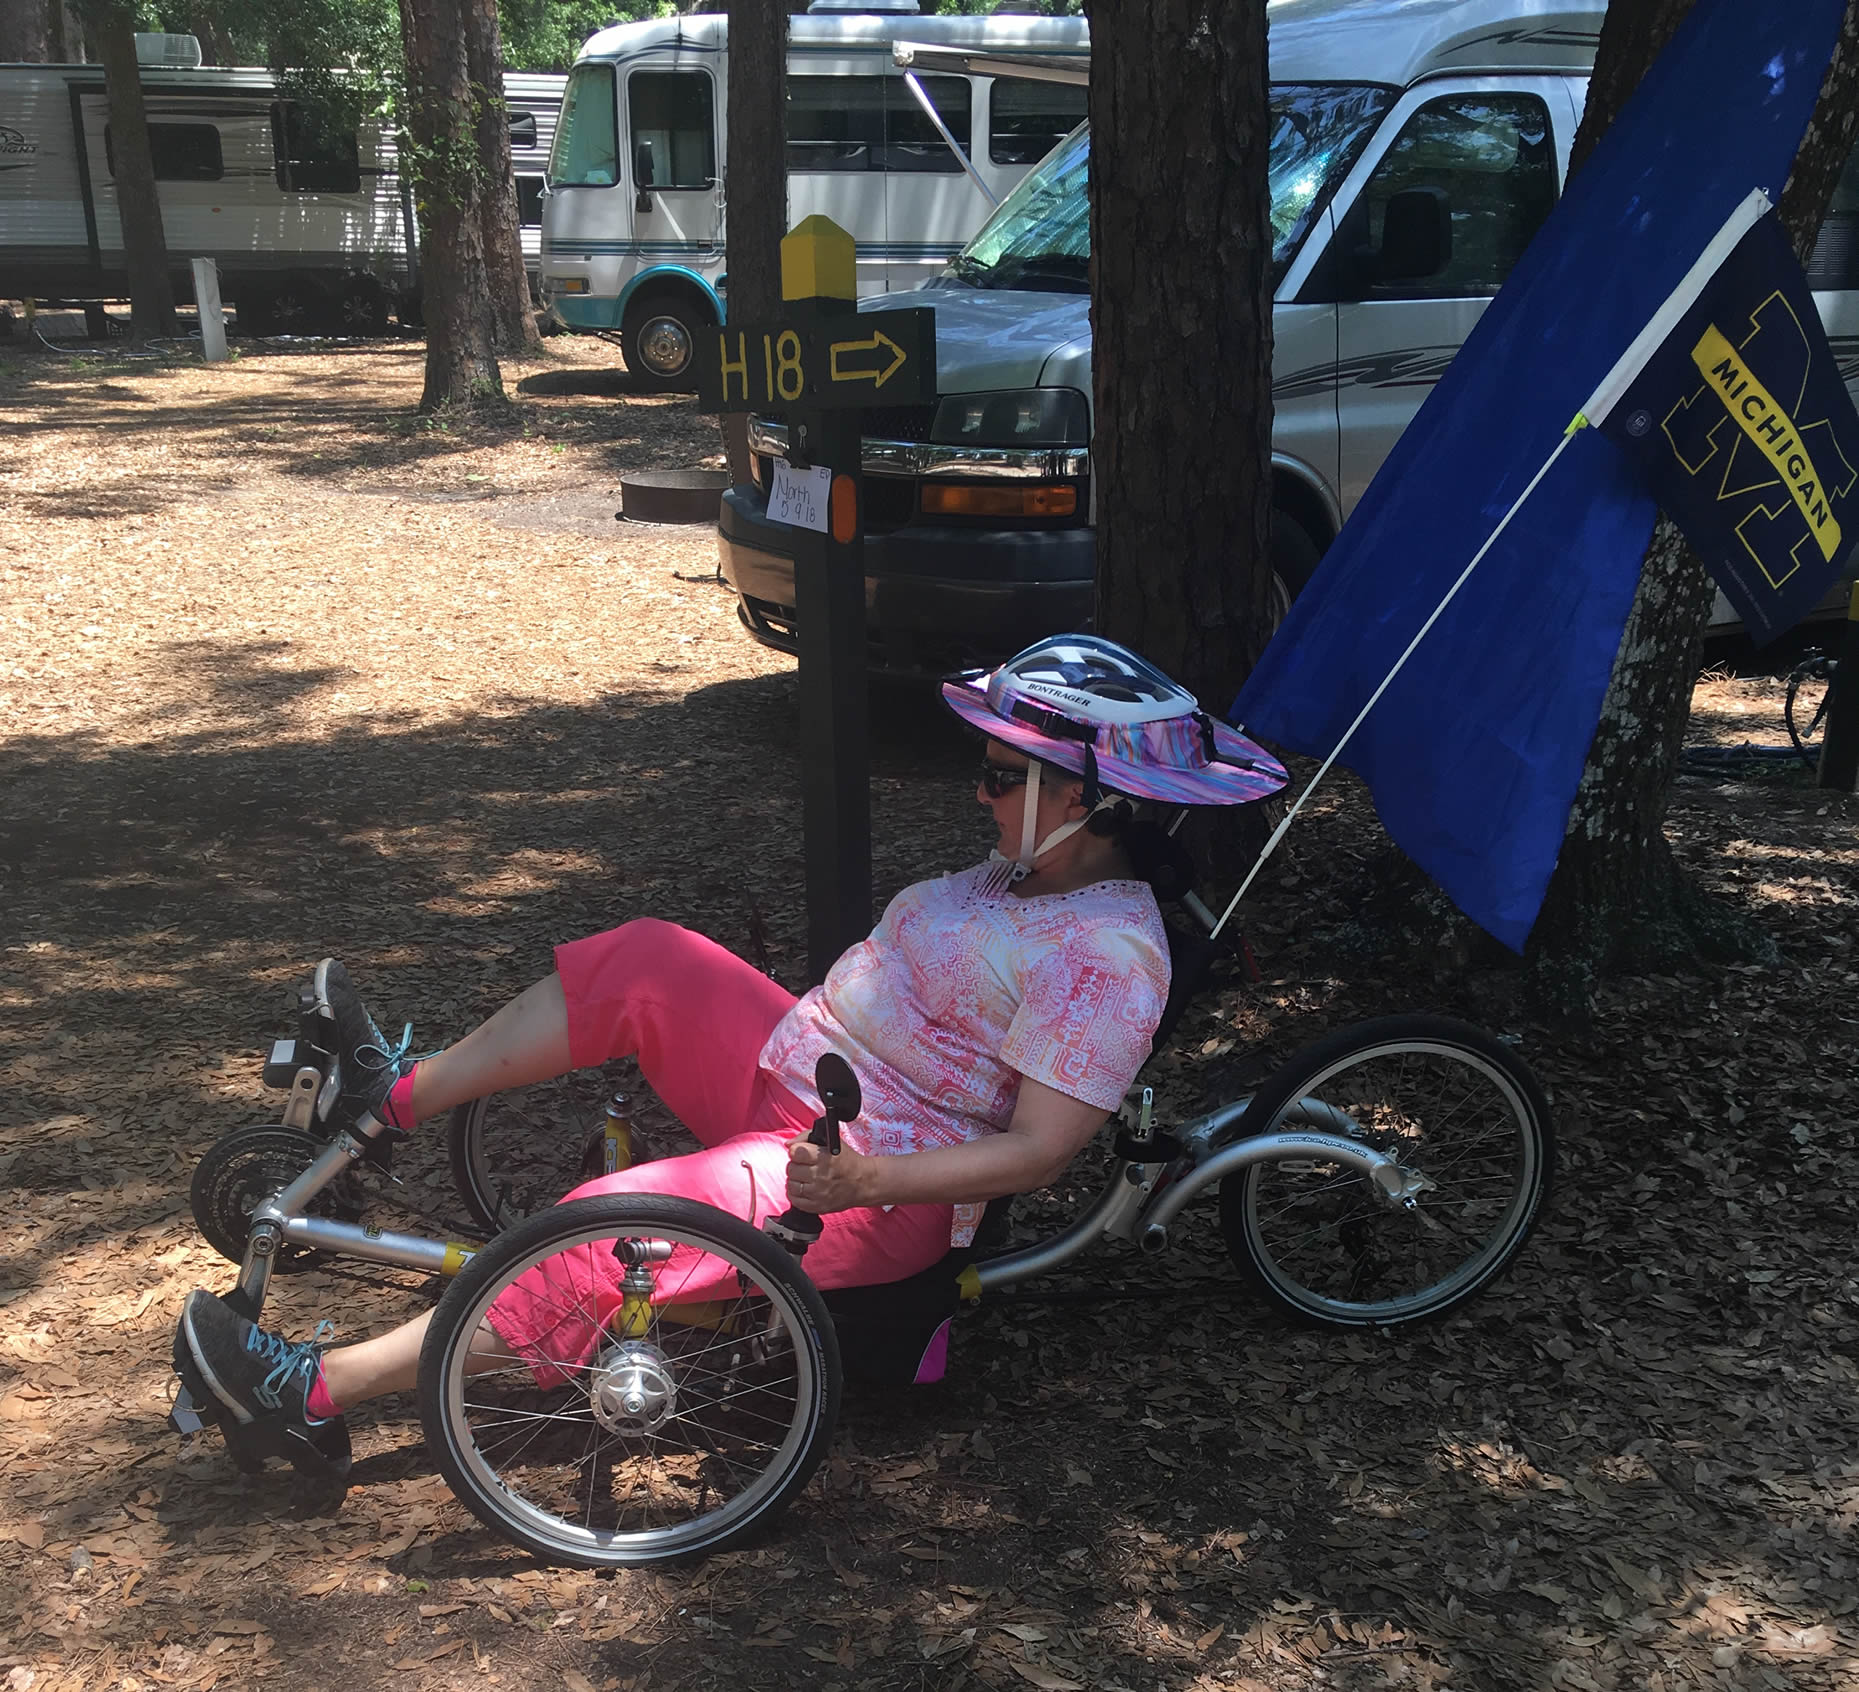 A Recumbent Bike was a challenge for me!